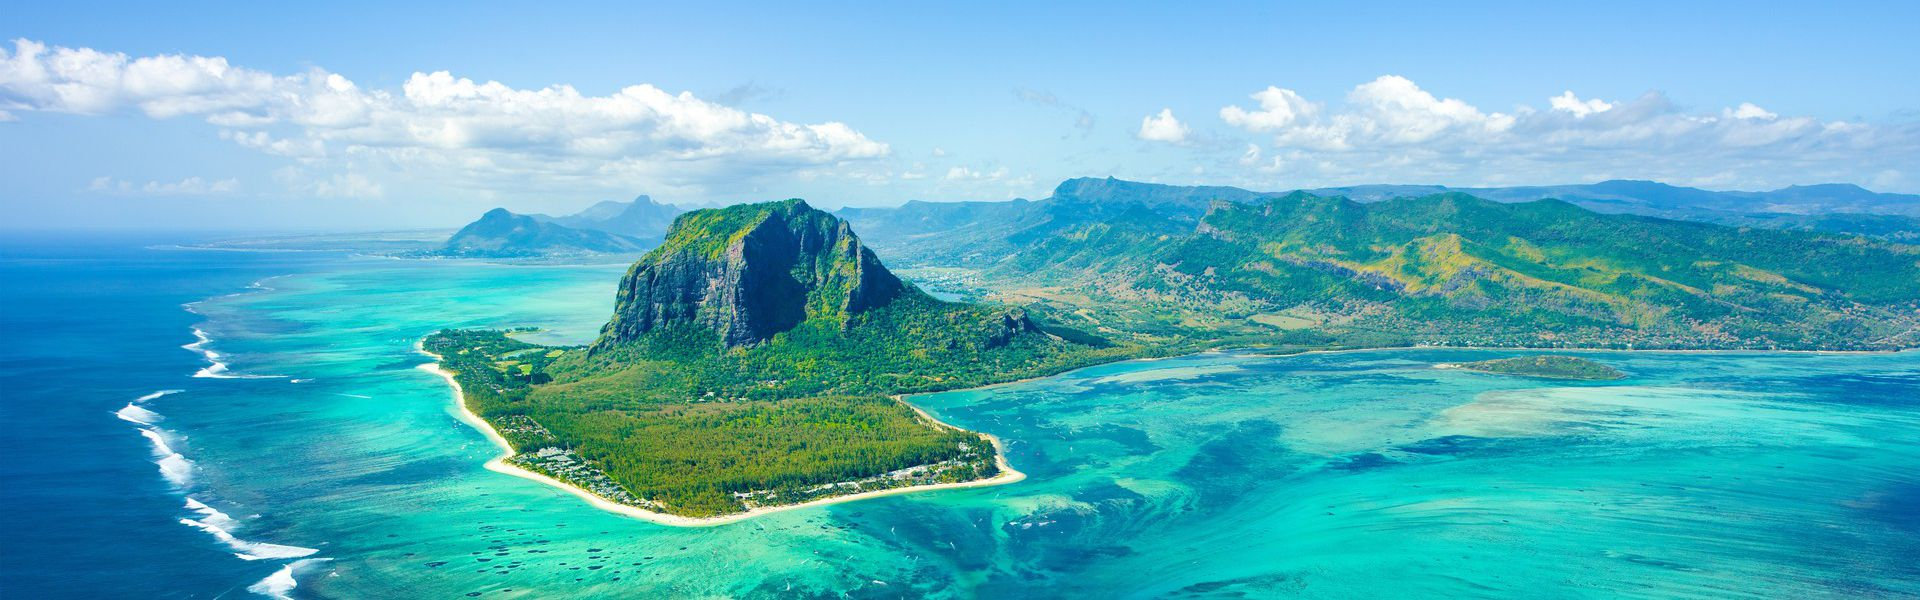 The republic of Mauritius comprises of several islands located in the south-east of the Indian Ocean. The main island is 2,000 kilometers away from the eastern coast of Africa. Foreigners thoroughly enjoy its beaches and sea as well as its culture. Mauritians are welcoming and different cultures coexist peacefully here. While the island has evolved and kept up with the needs of modern times, it has not let go of its roots.